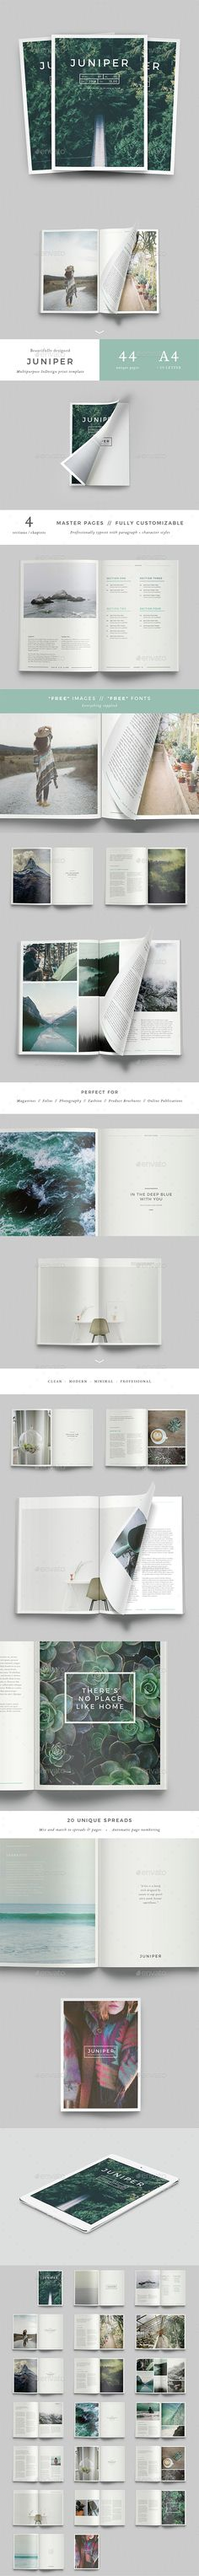 Juniper Magazine / Portfolio Template InDesign INDD. Download here…